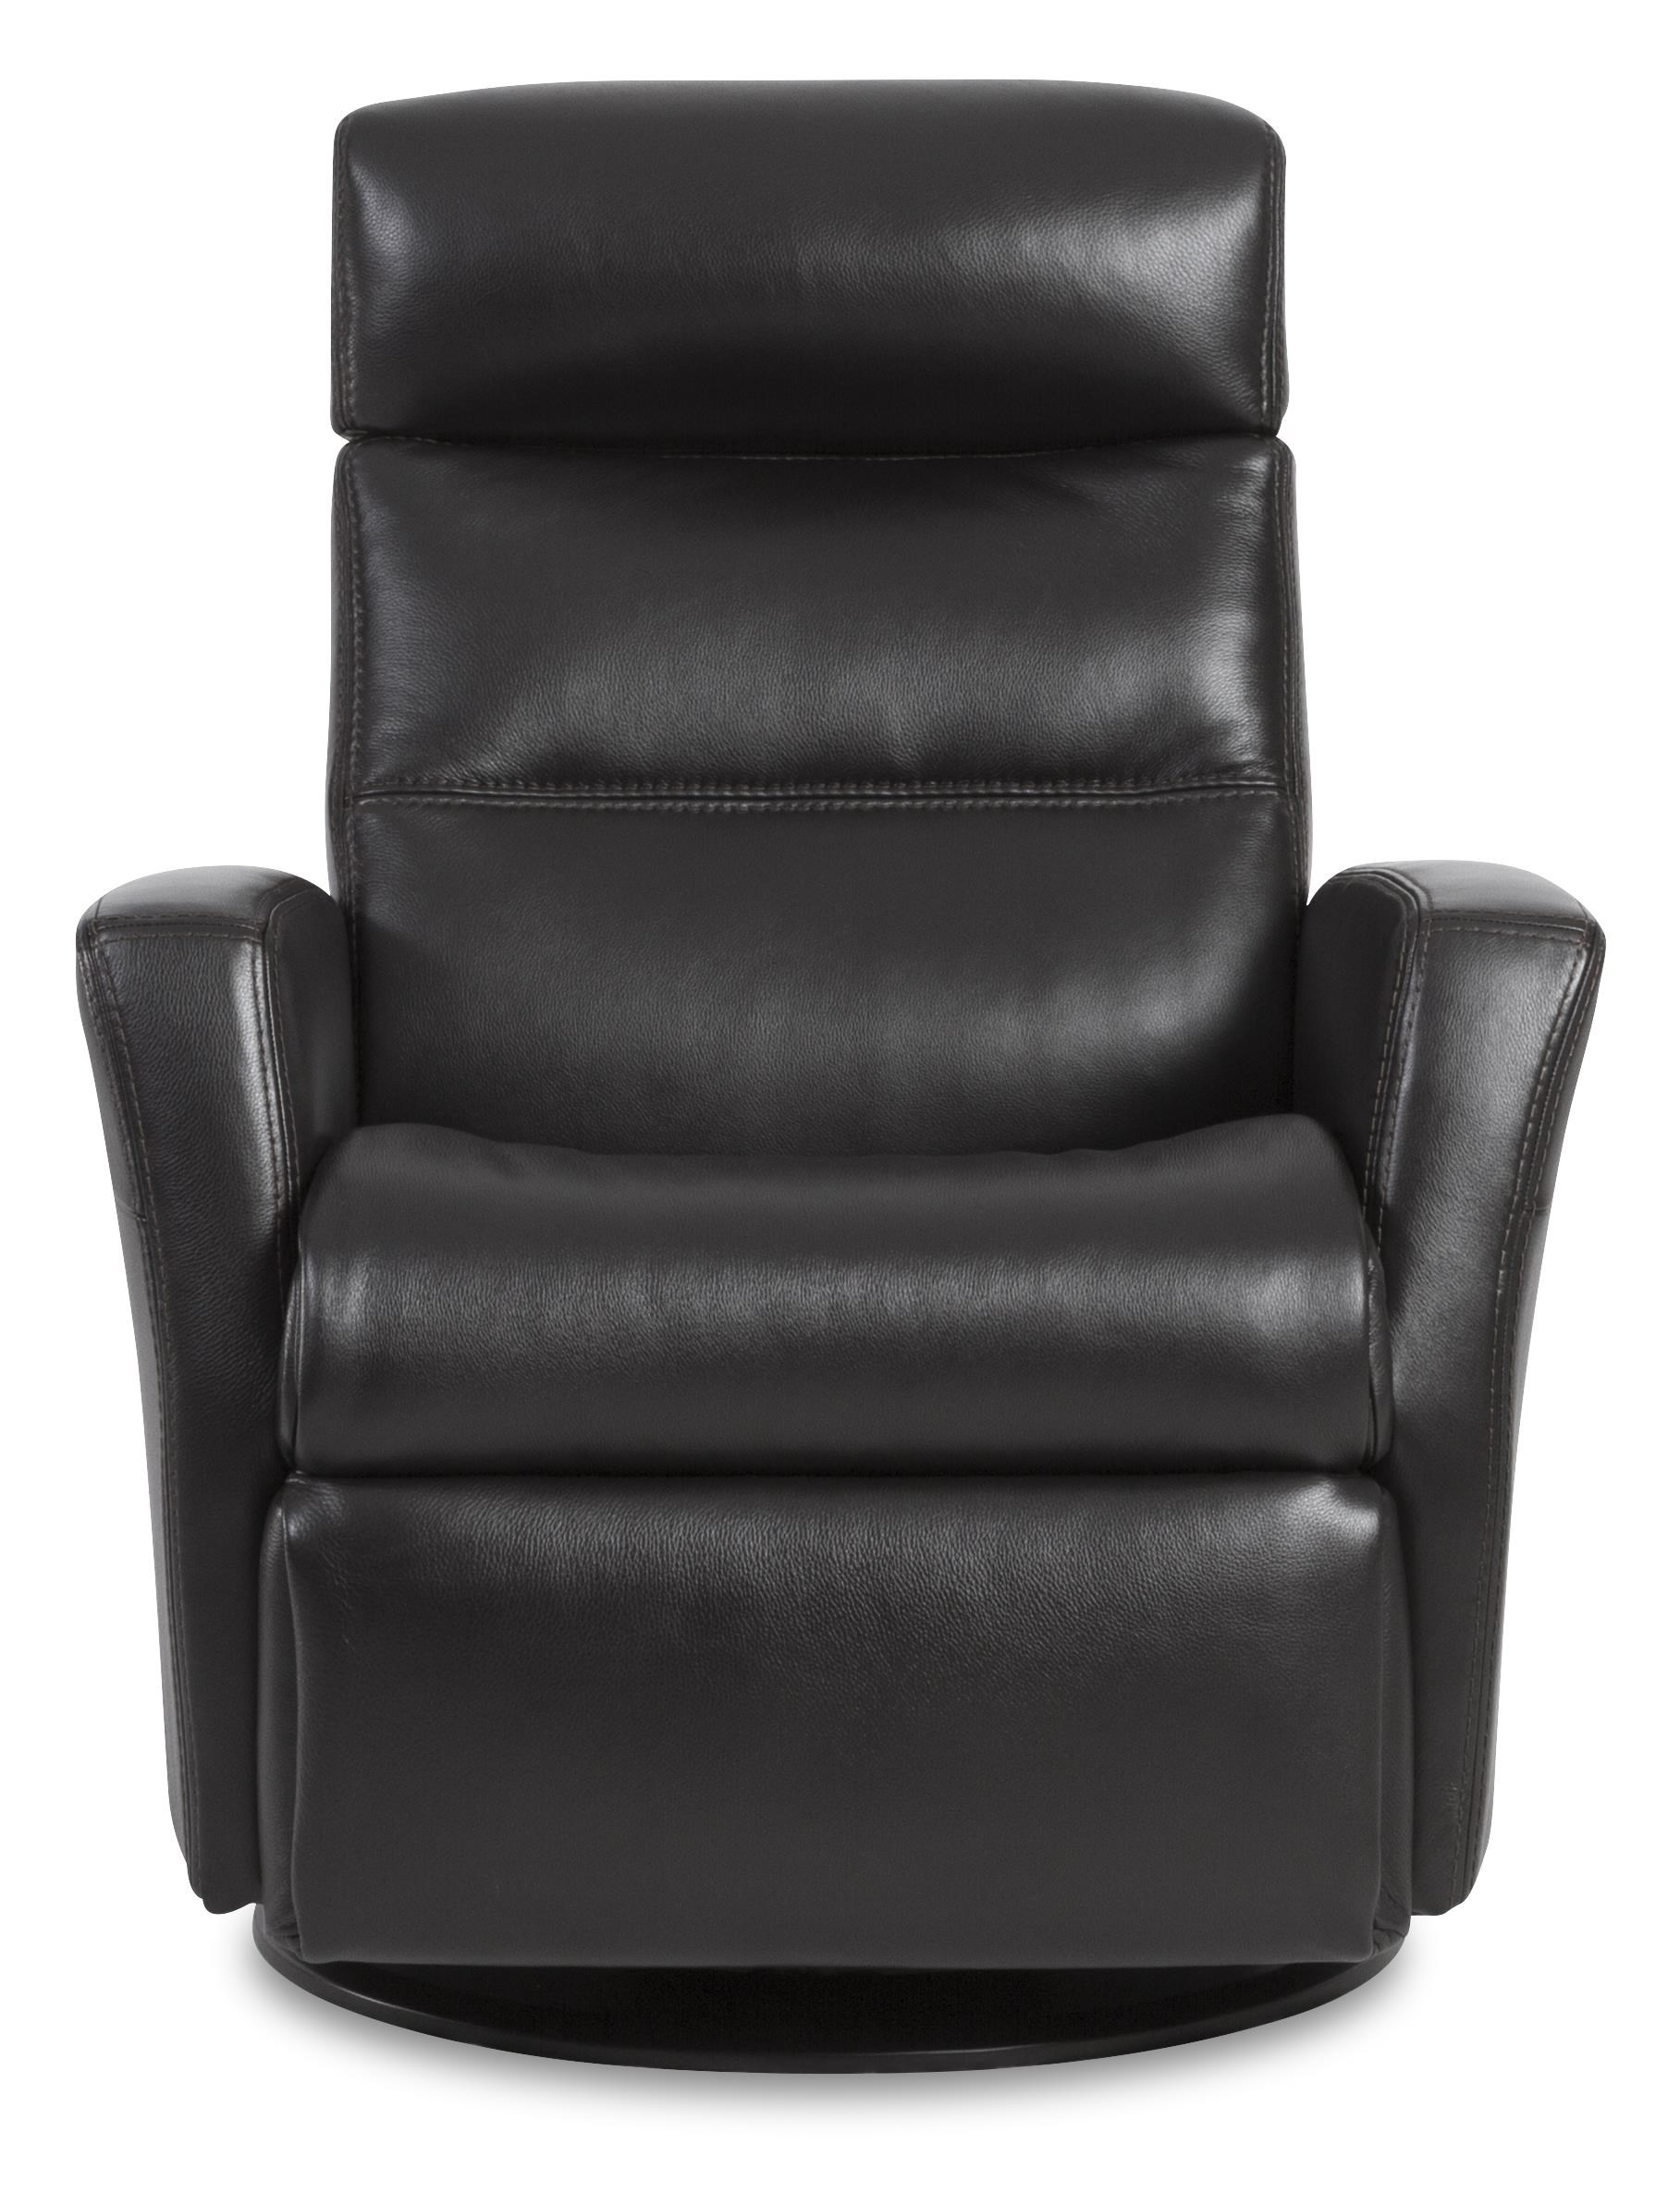 IMG Norway Divani CompactSize Manual Recliner with Swivel